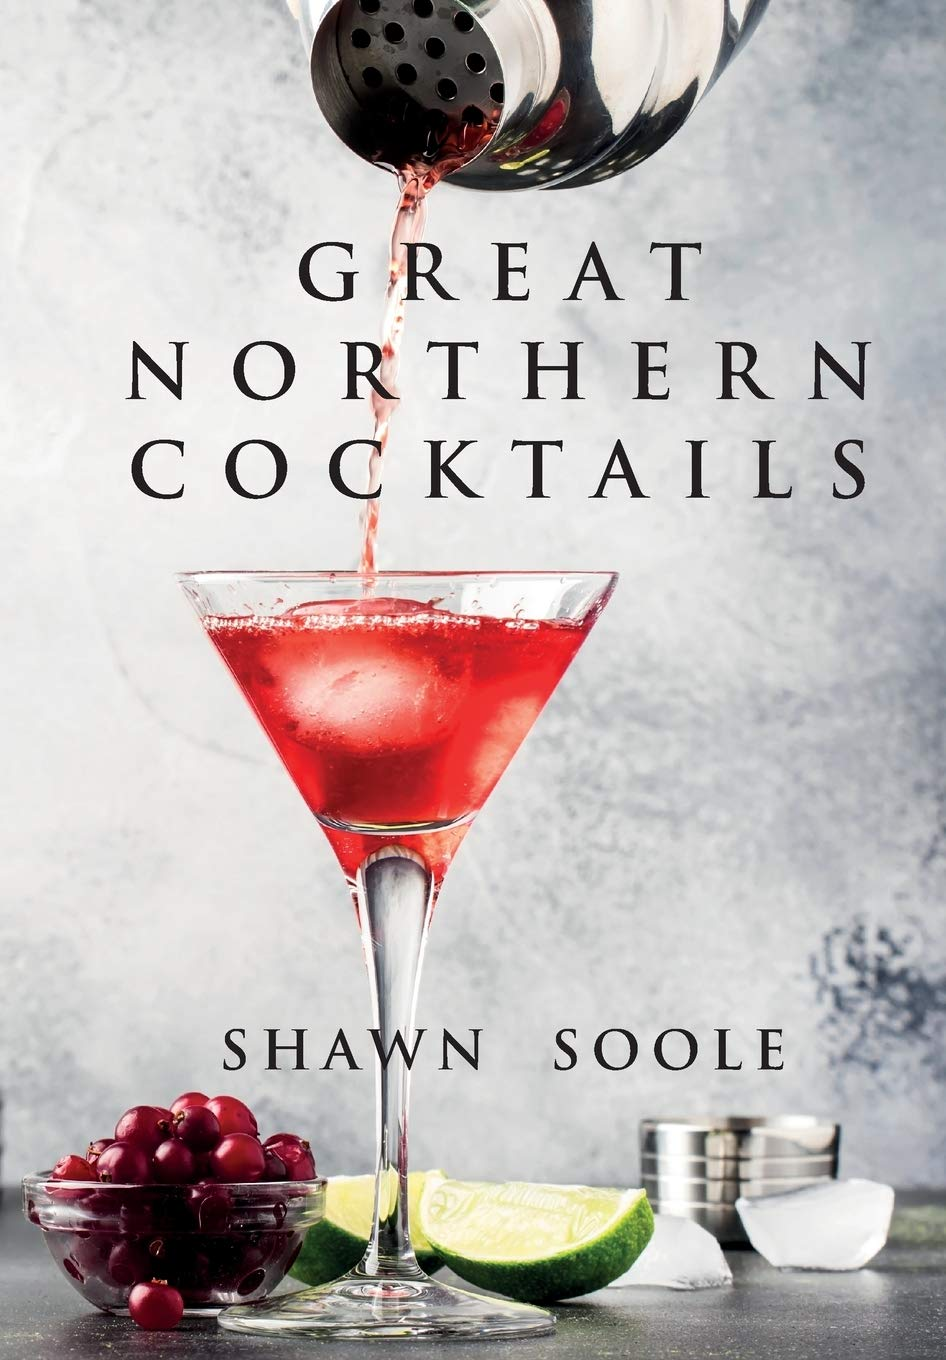 Great Northern Cocktails